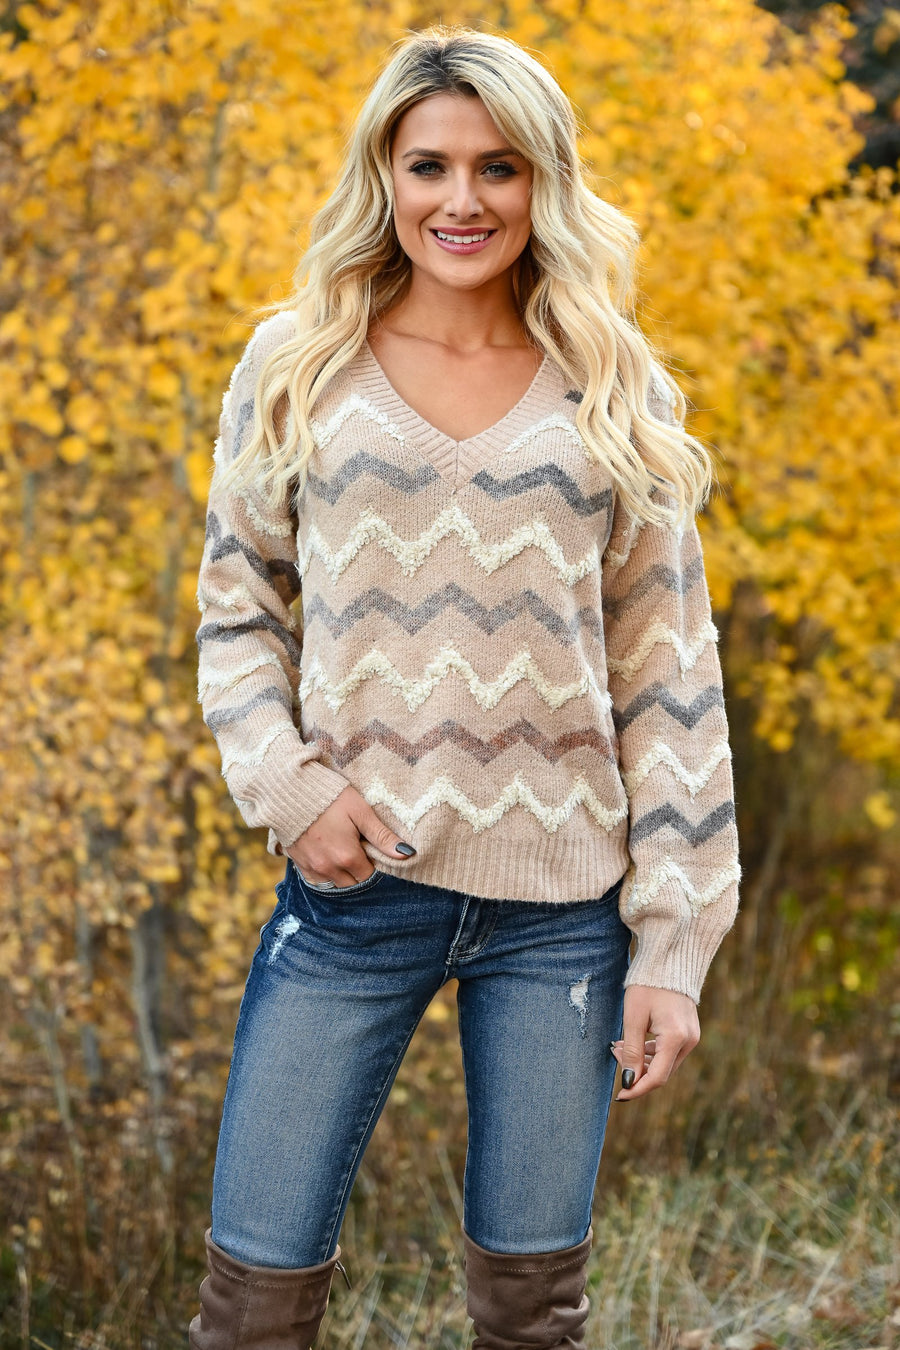 Back Again Knit Sweater - Taupe front leaning against wall ; Model: Hannah Sluss